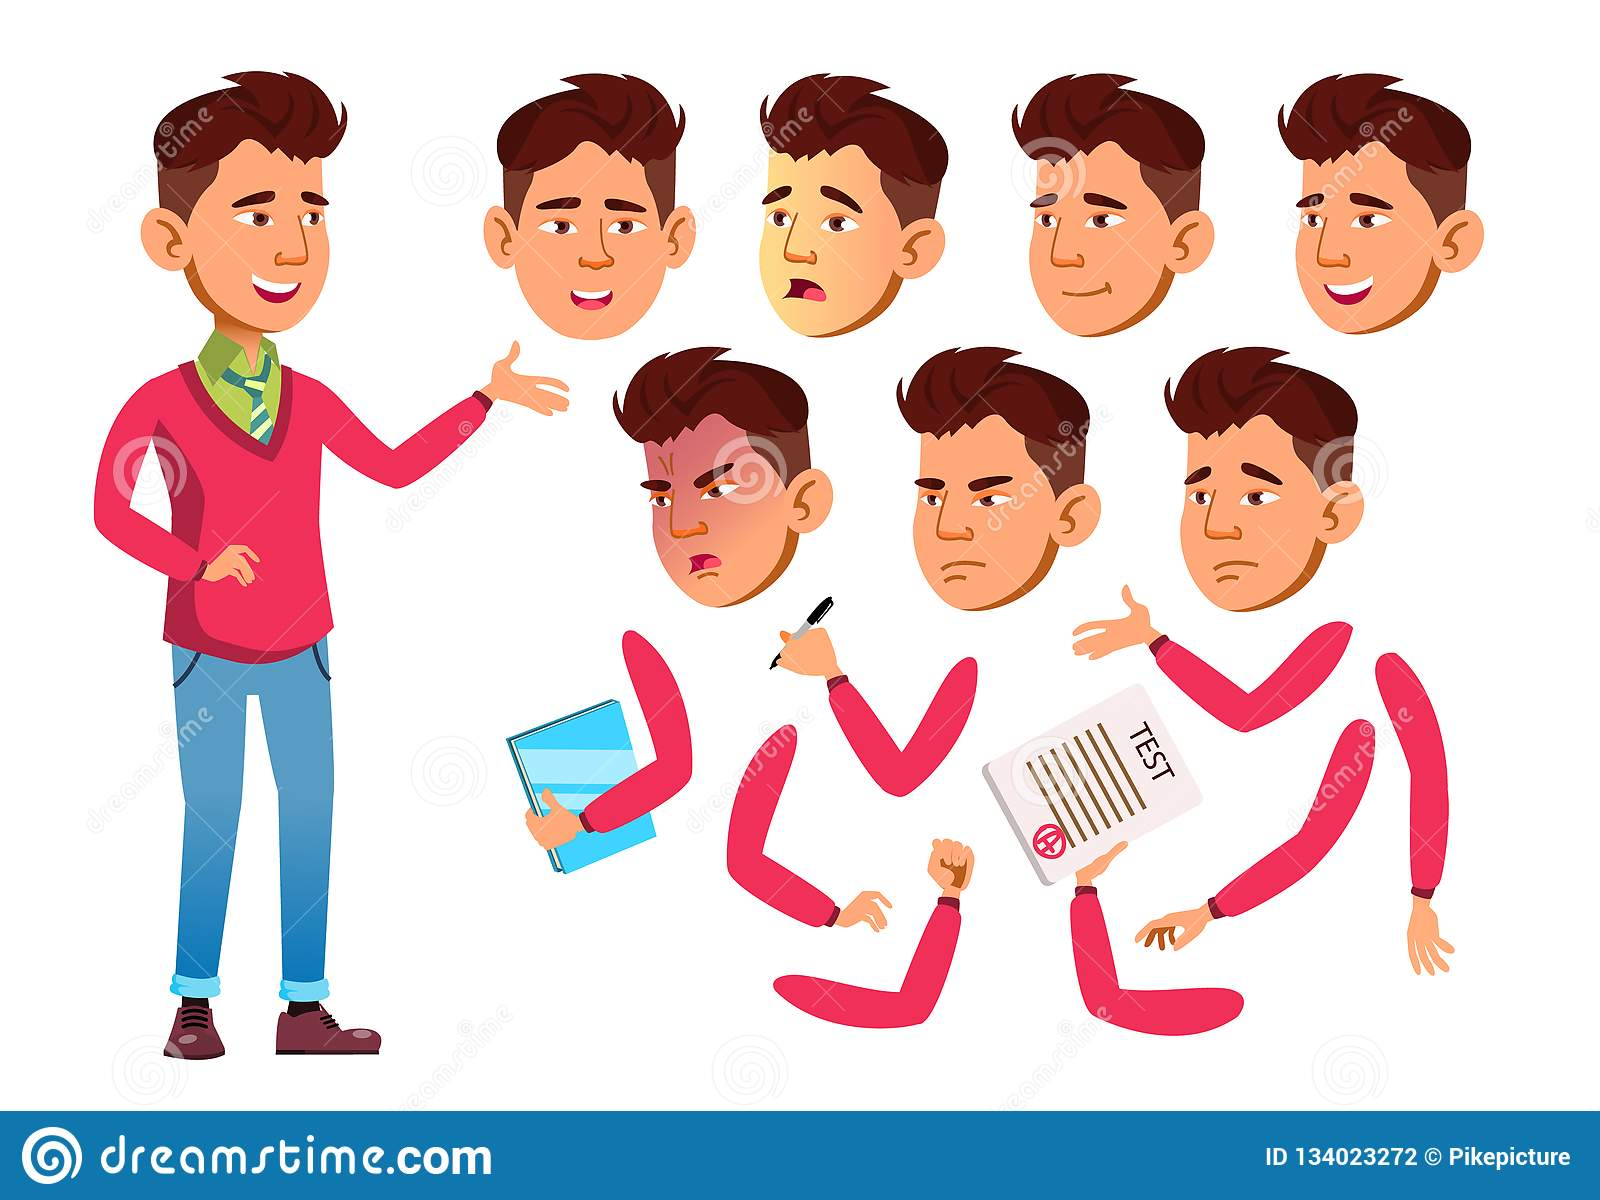 Asian Teen Boy Vector. Teenager. Adult People. Casual. Face Emotions, Various Gestures. Animation Creation Set. Isolated